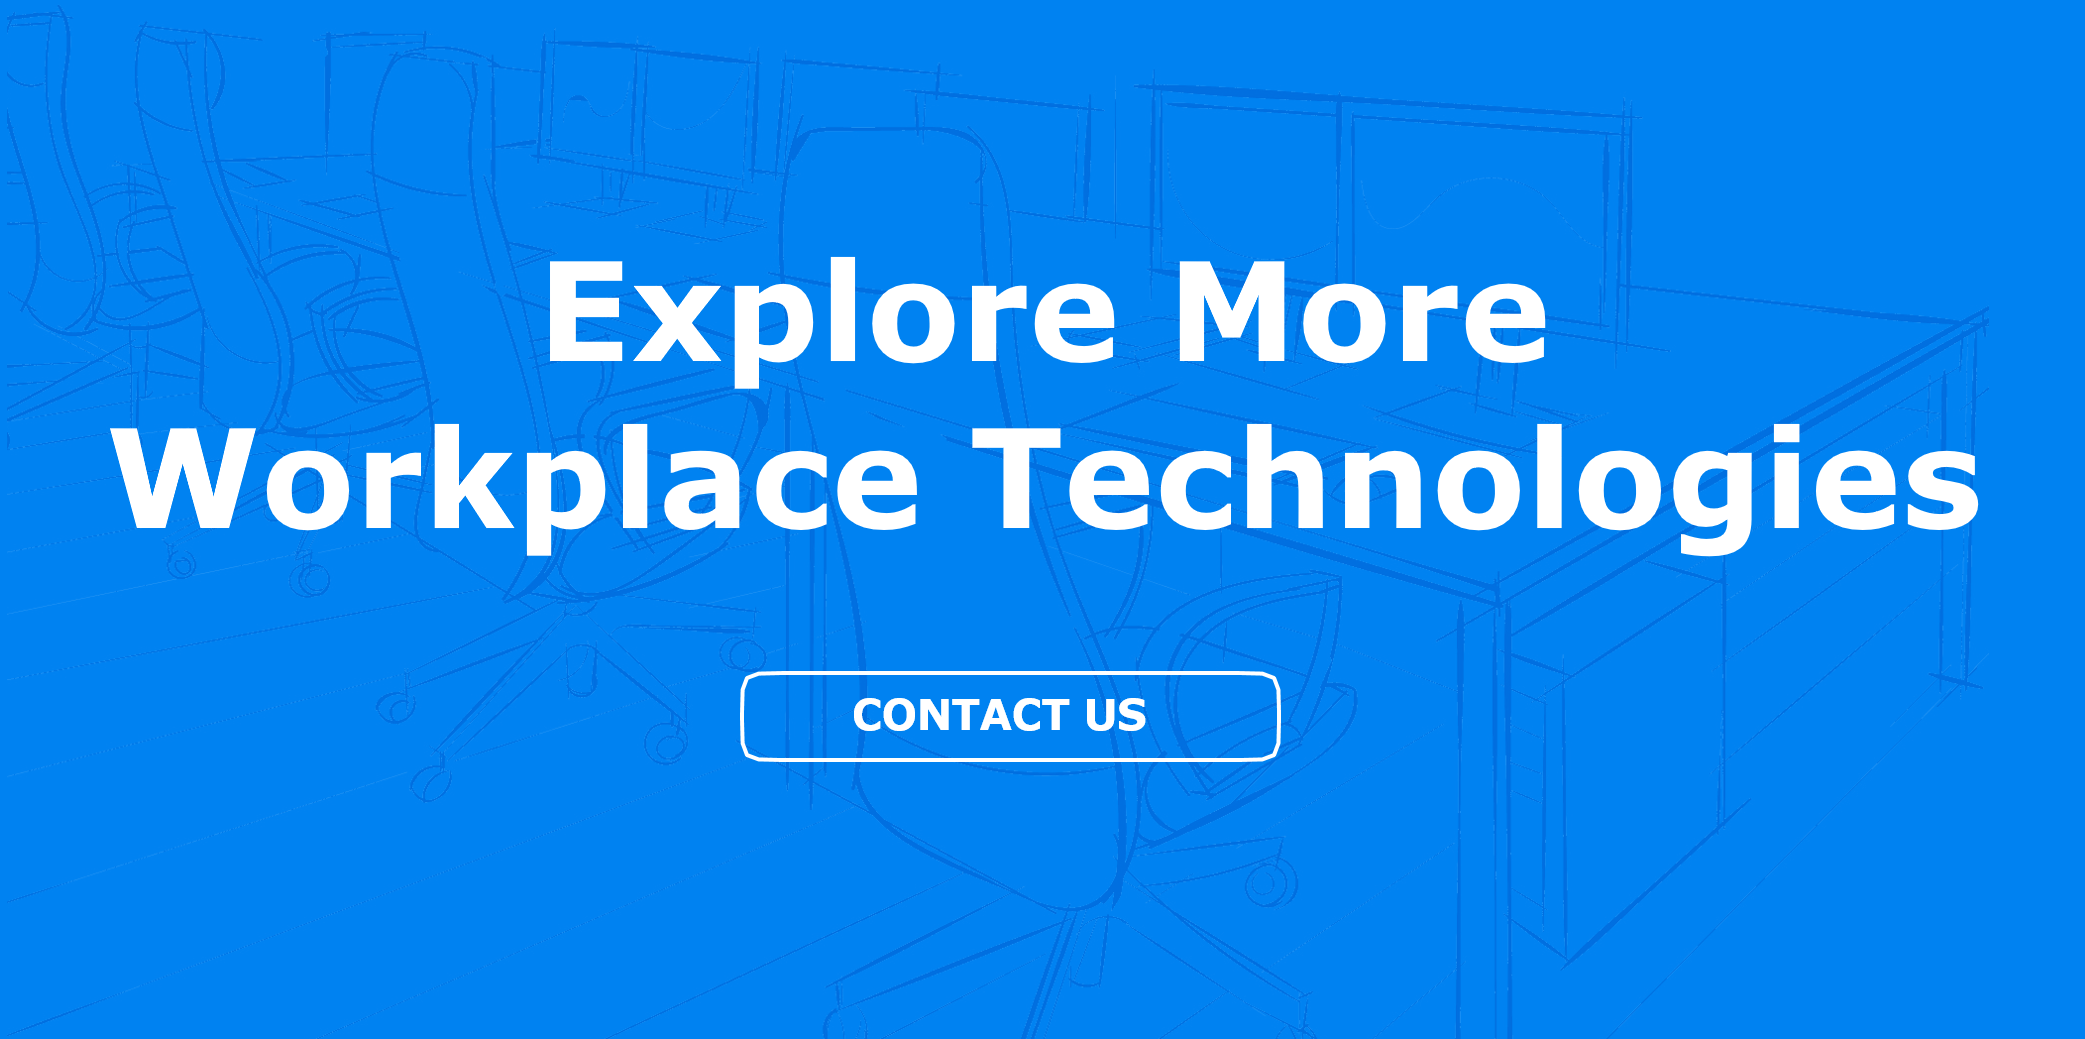 Contact Komstadt to explore more workplace technologies